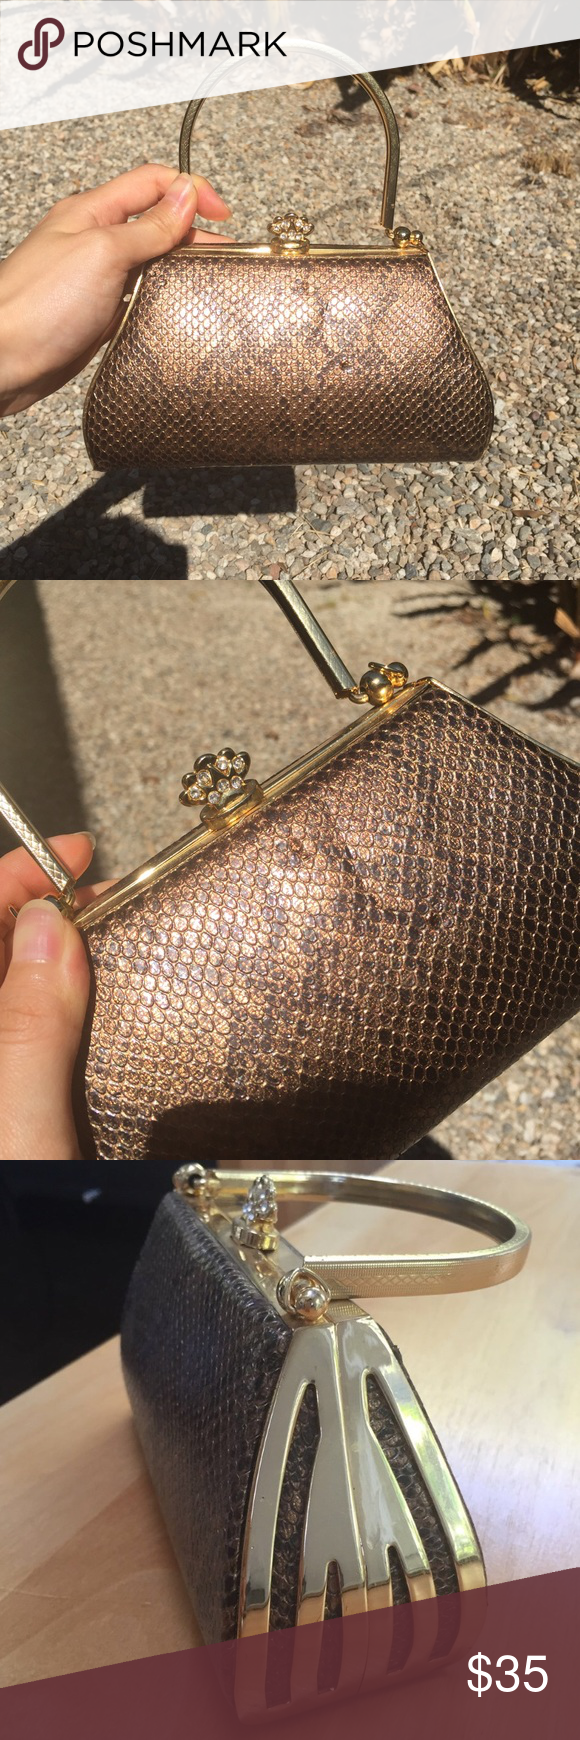 Vtg Gold Faux Snakeskin Clutch Purse Vtg faux snakeskin clutch and it looks so realll..it also has a cute little princess crown at the top for opening and closing. Pristine condition. Used once. Bags Clutches & Wristlets